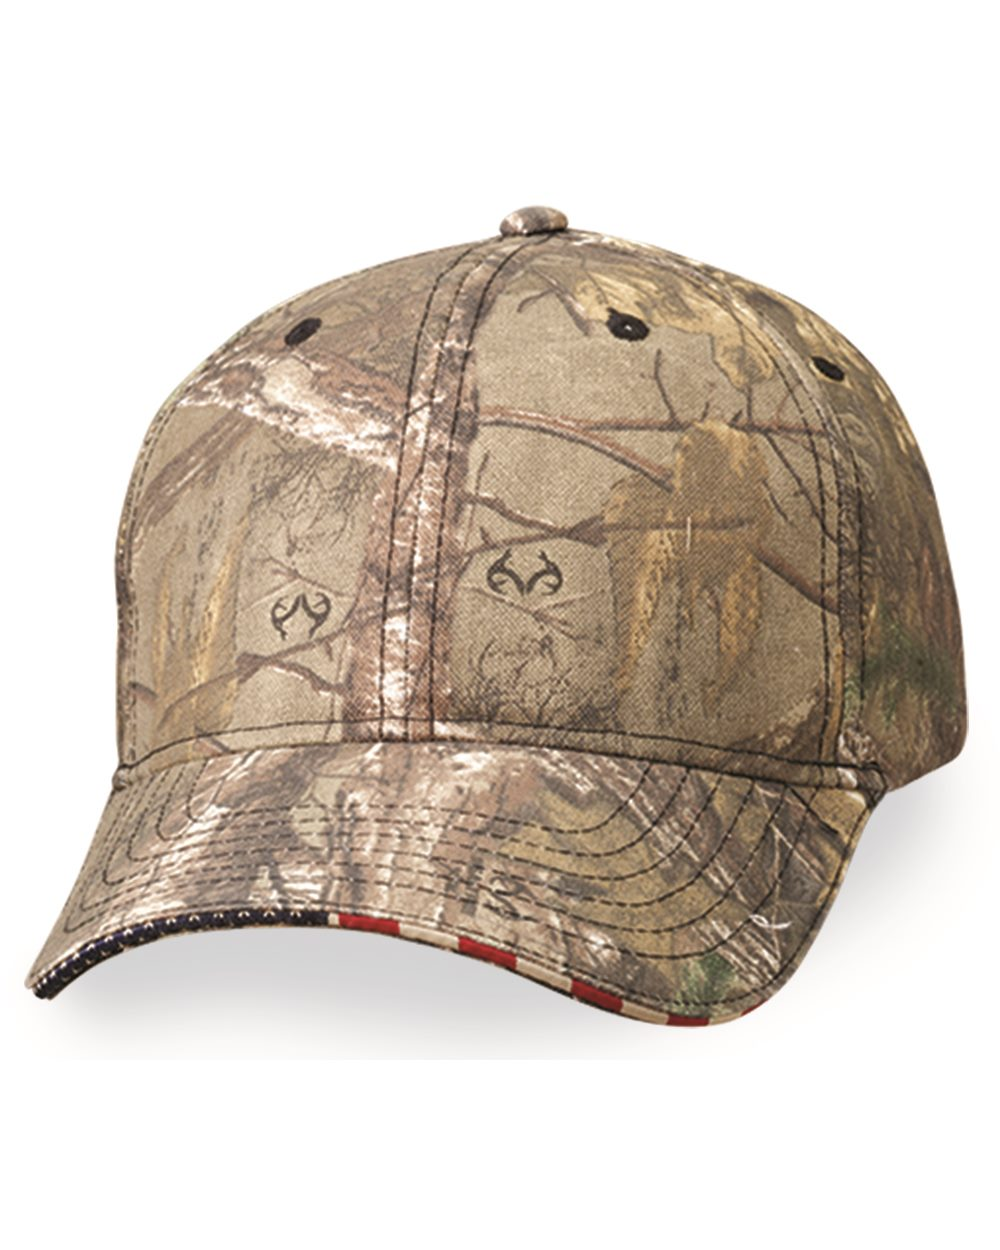 Outdoor Cap - American Flag Sandwich Camo Cap - USA350